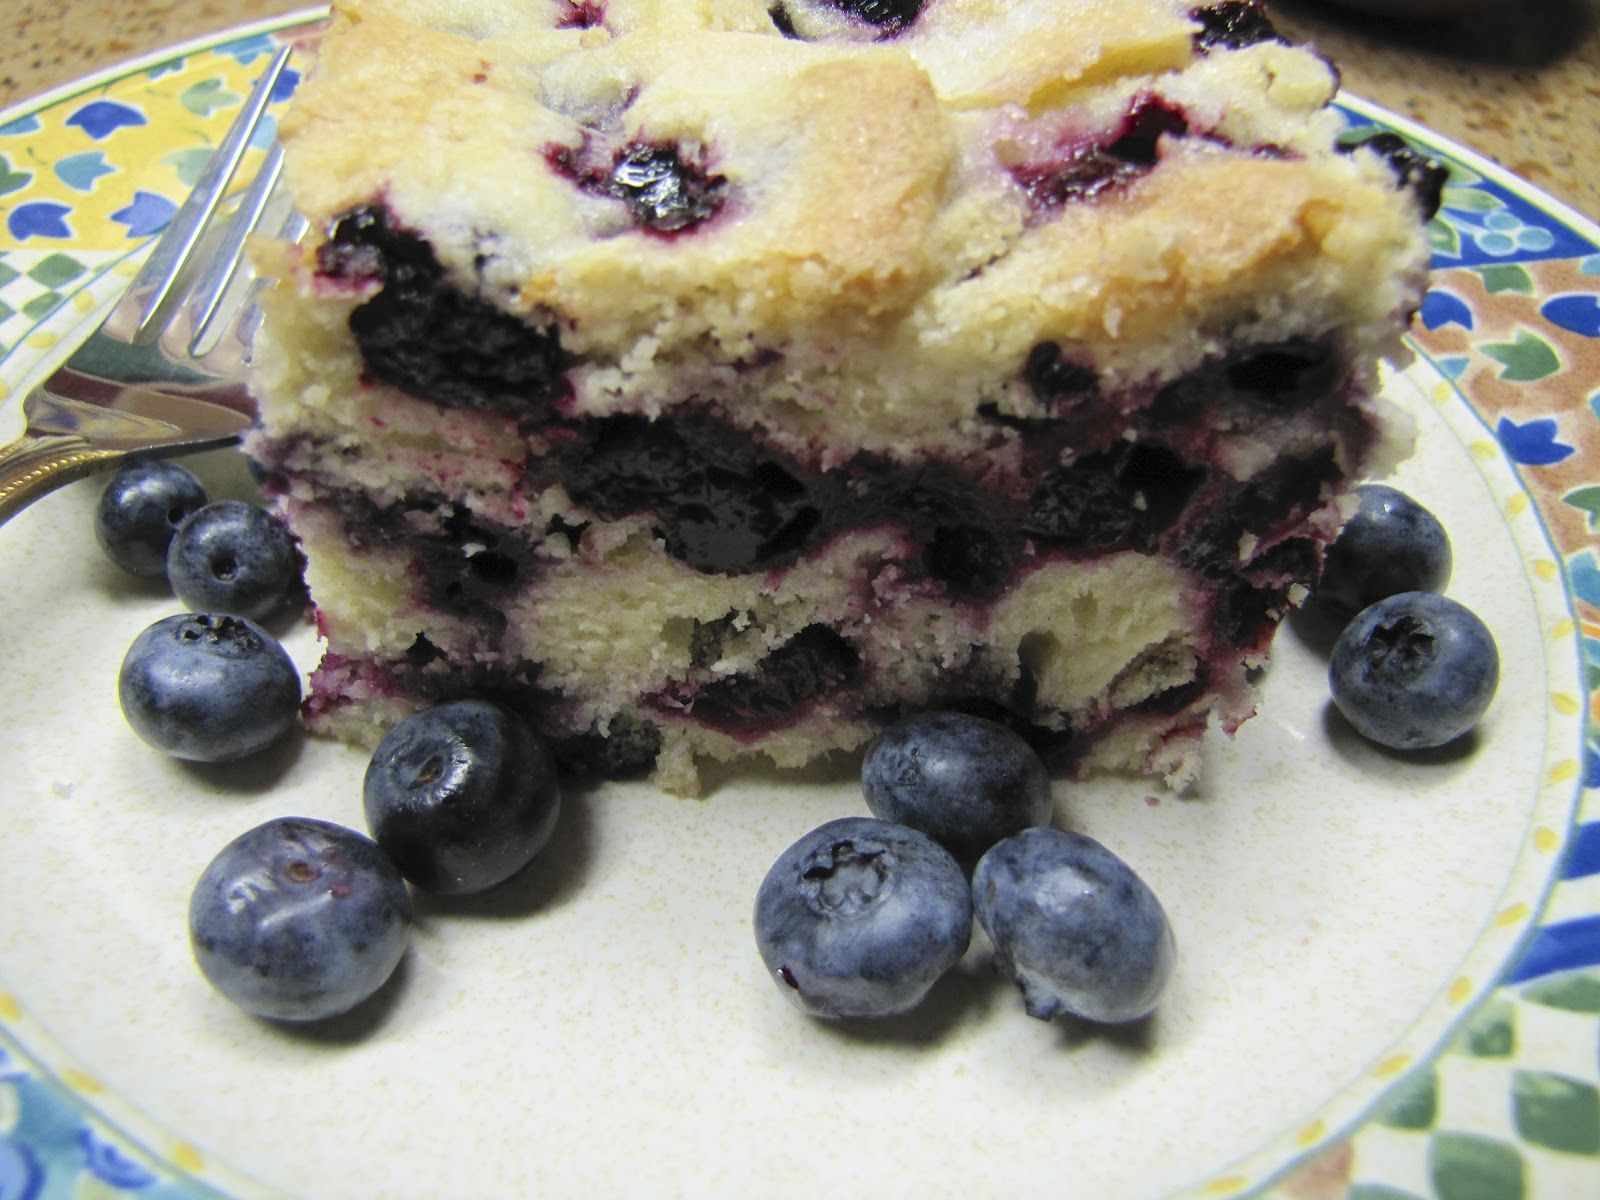 Canton Village Quilt Works: Buttermilk Blueberry Breakfast Cake